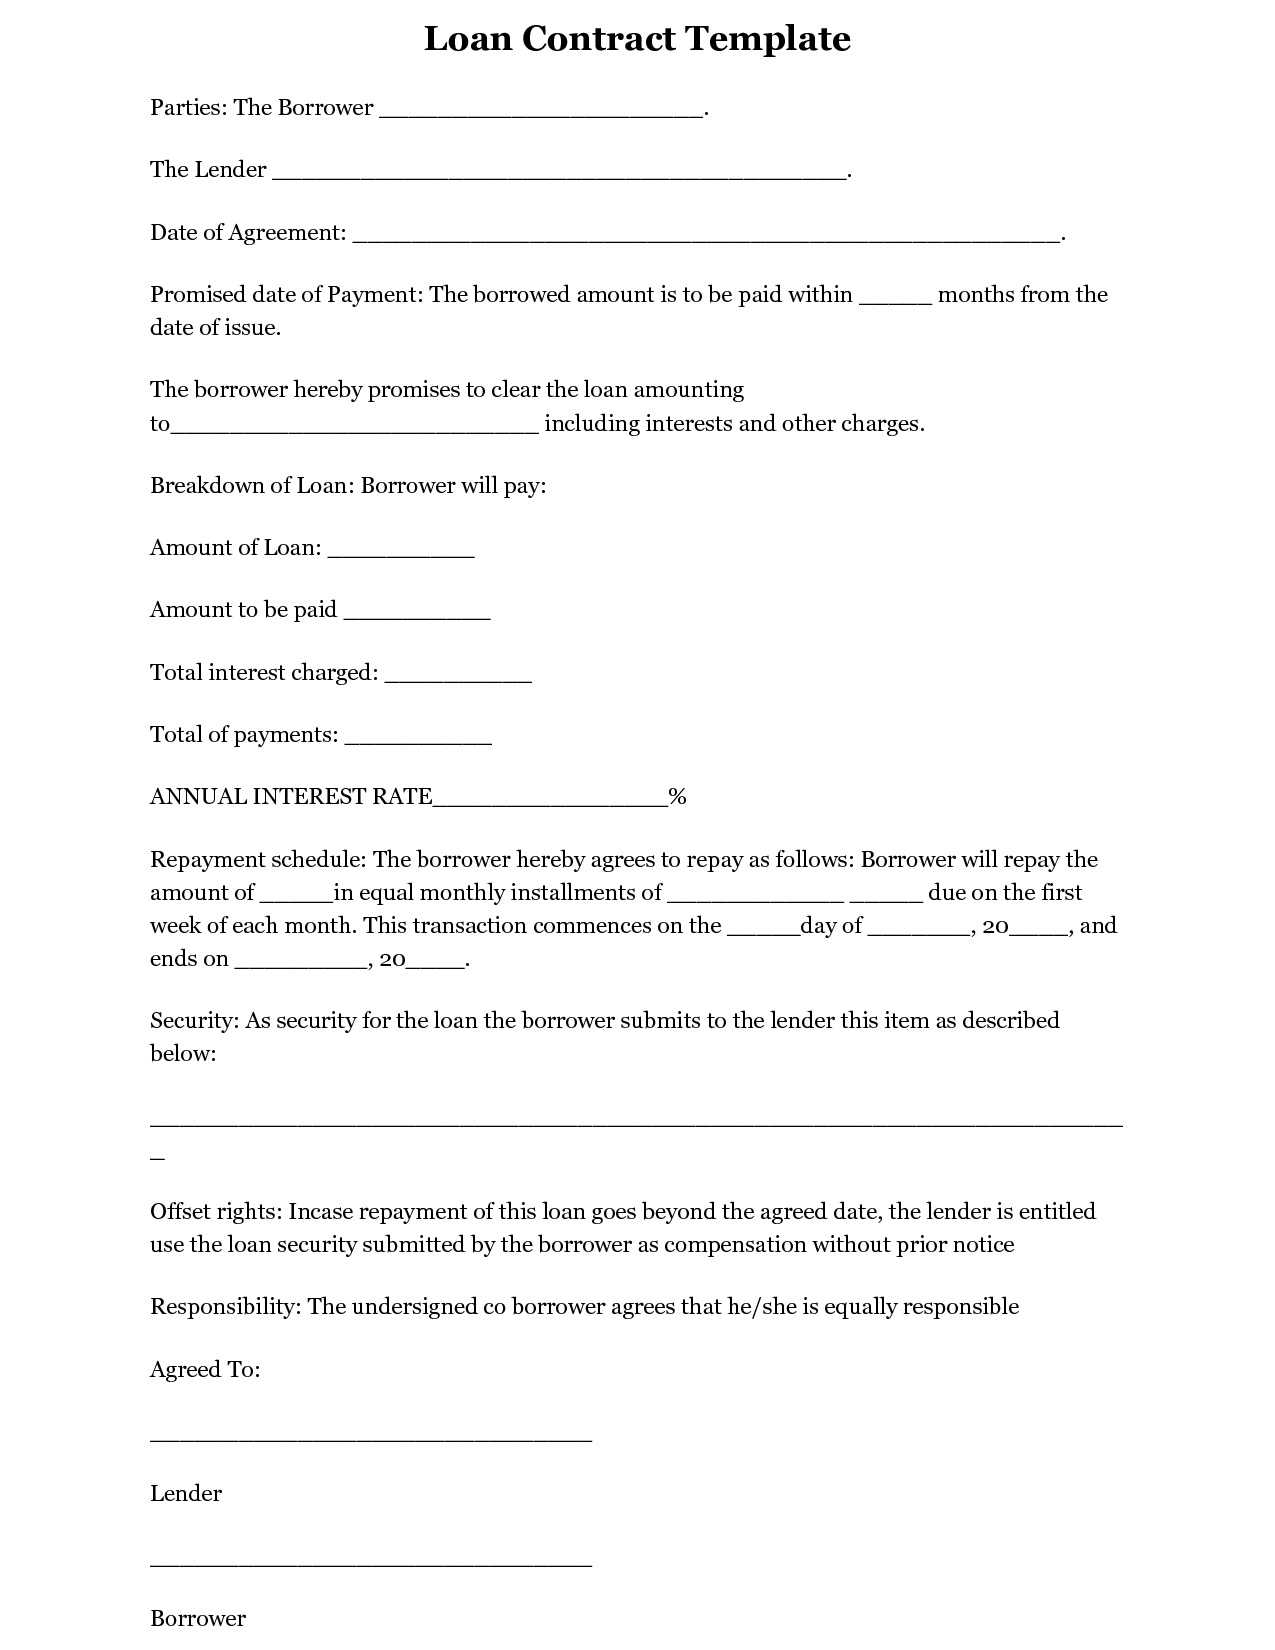 Simple Personal Loan Agreement Template